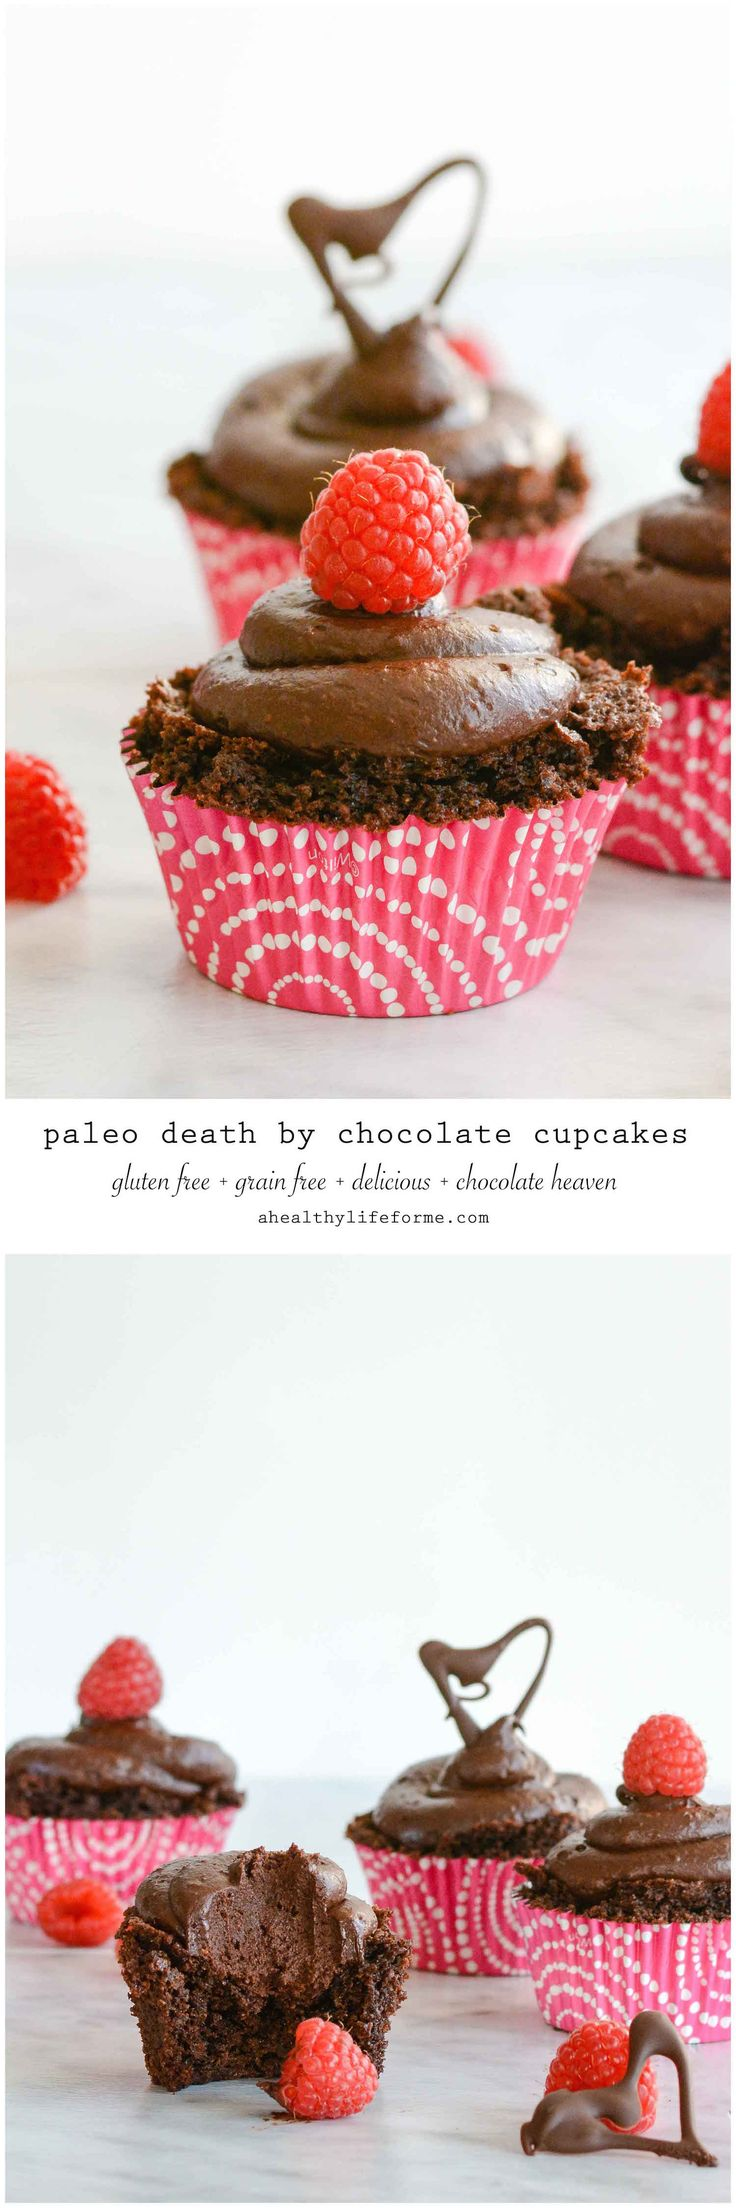 Paleo valentine s day meal ideas - Paleo Death By Chocolate Cupcakes